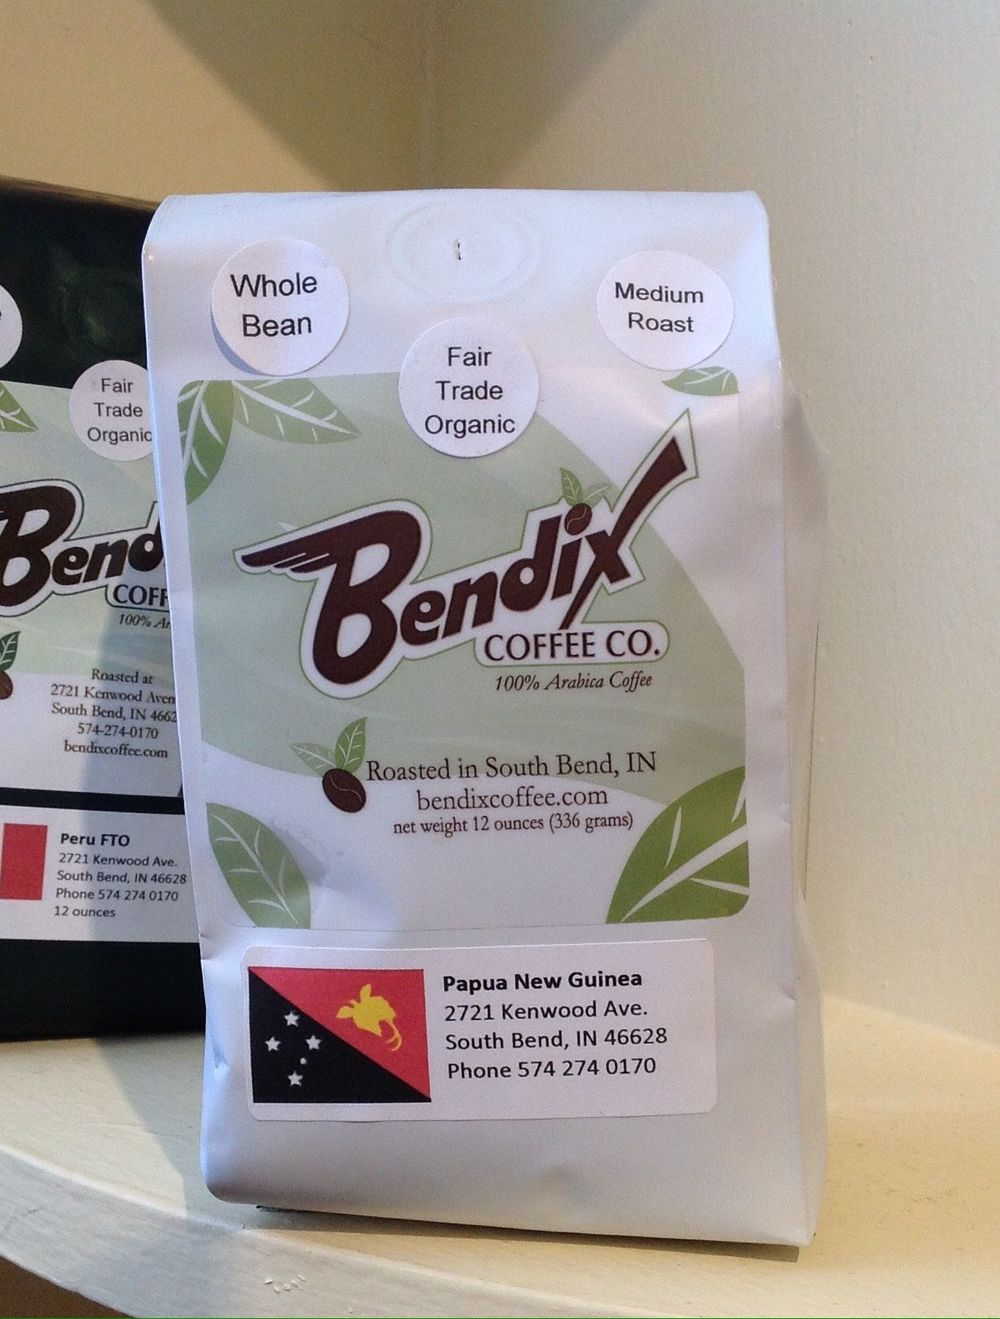 Bendix Coffee